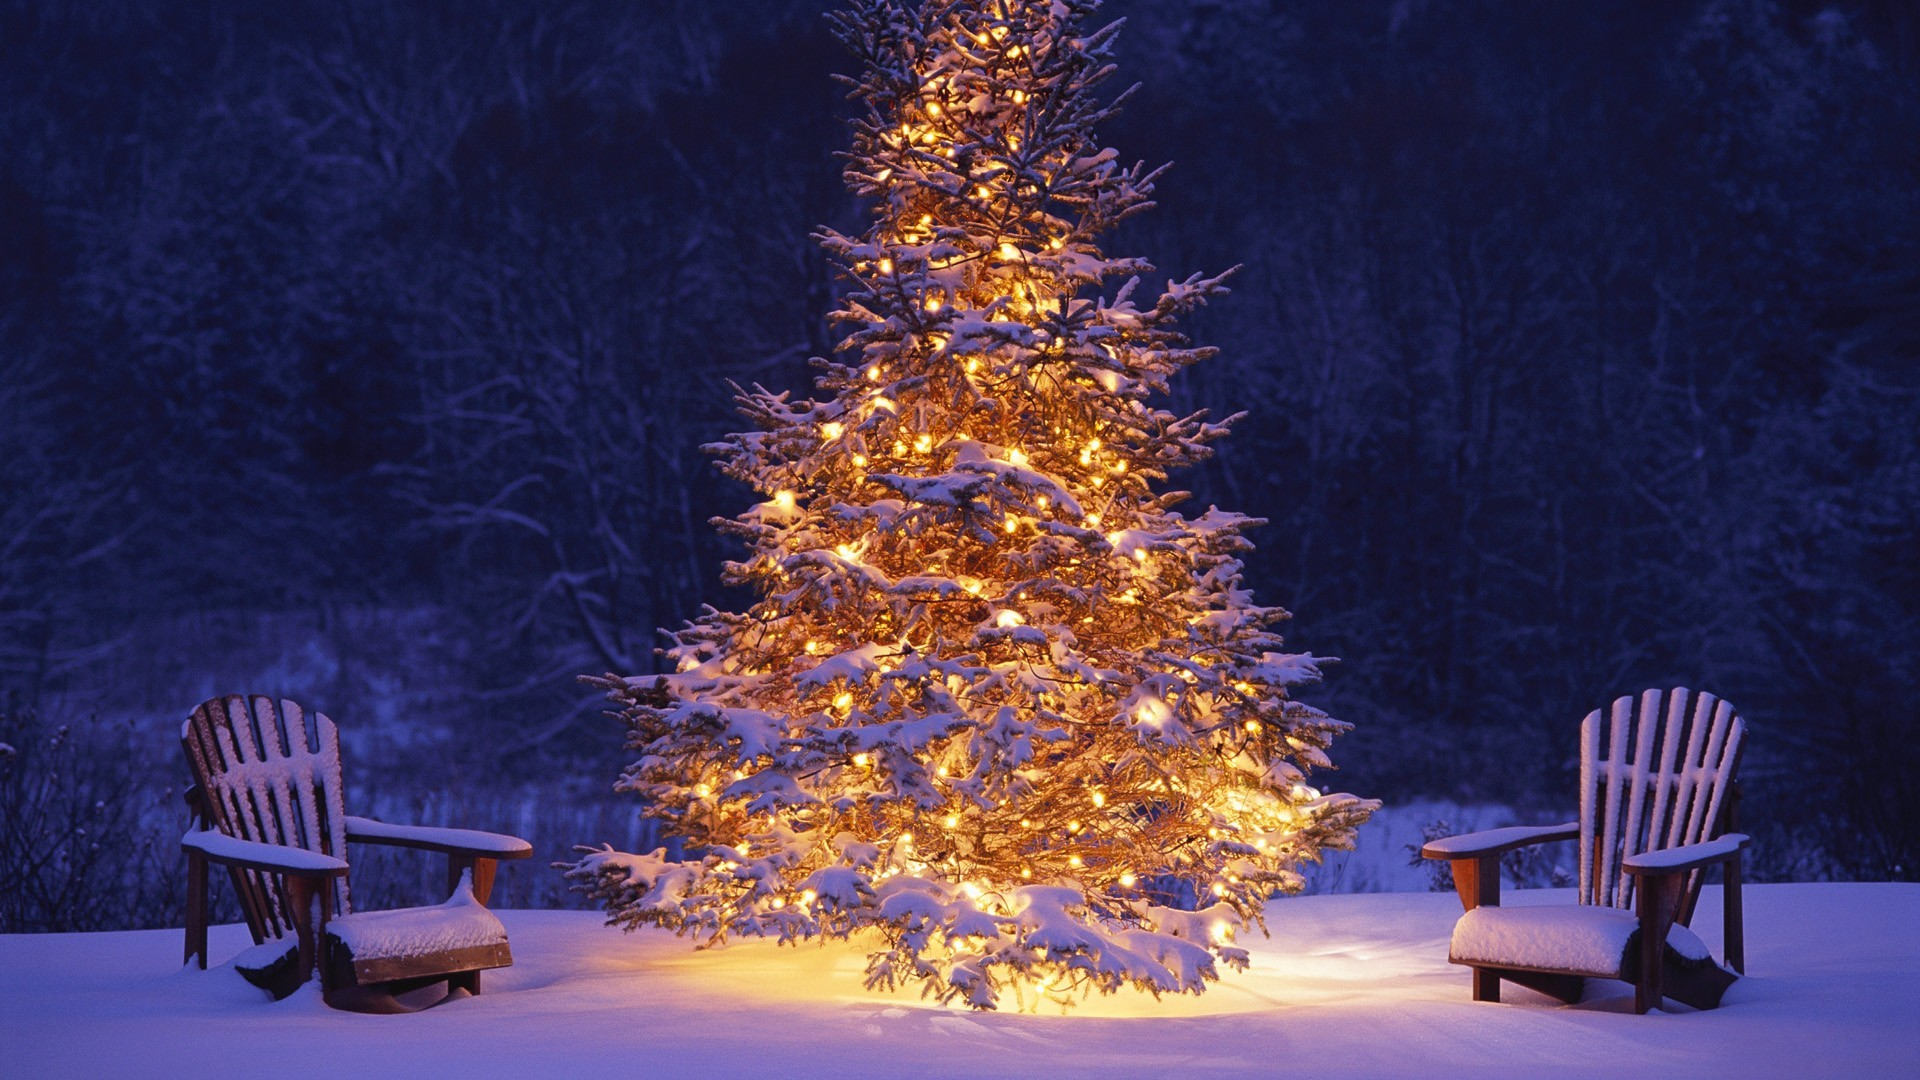 Christmas Wallpapers for Desktop 55 images 1920x1080